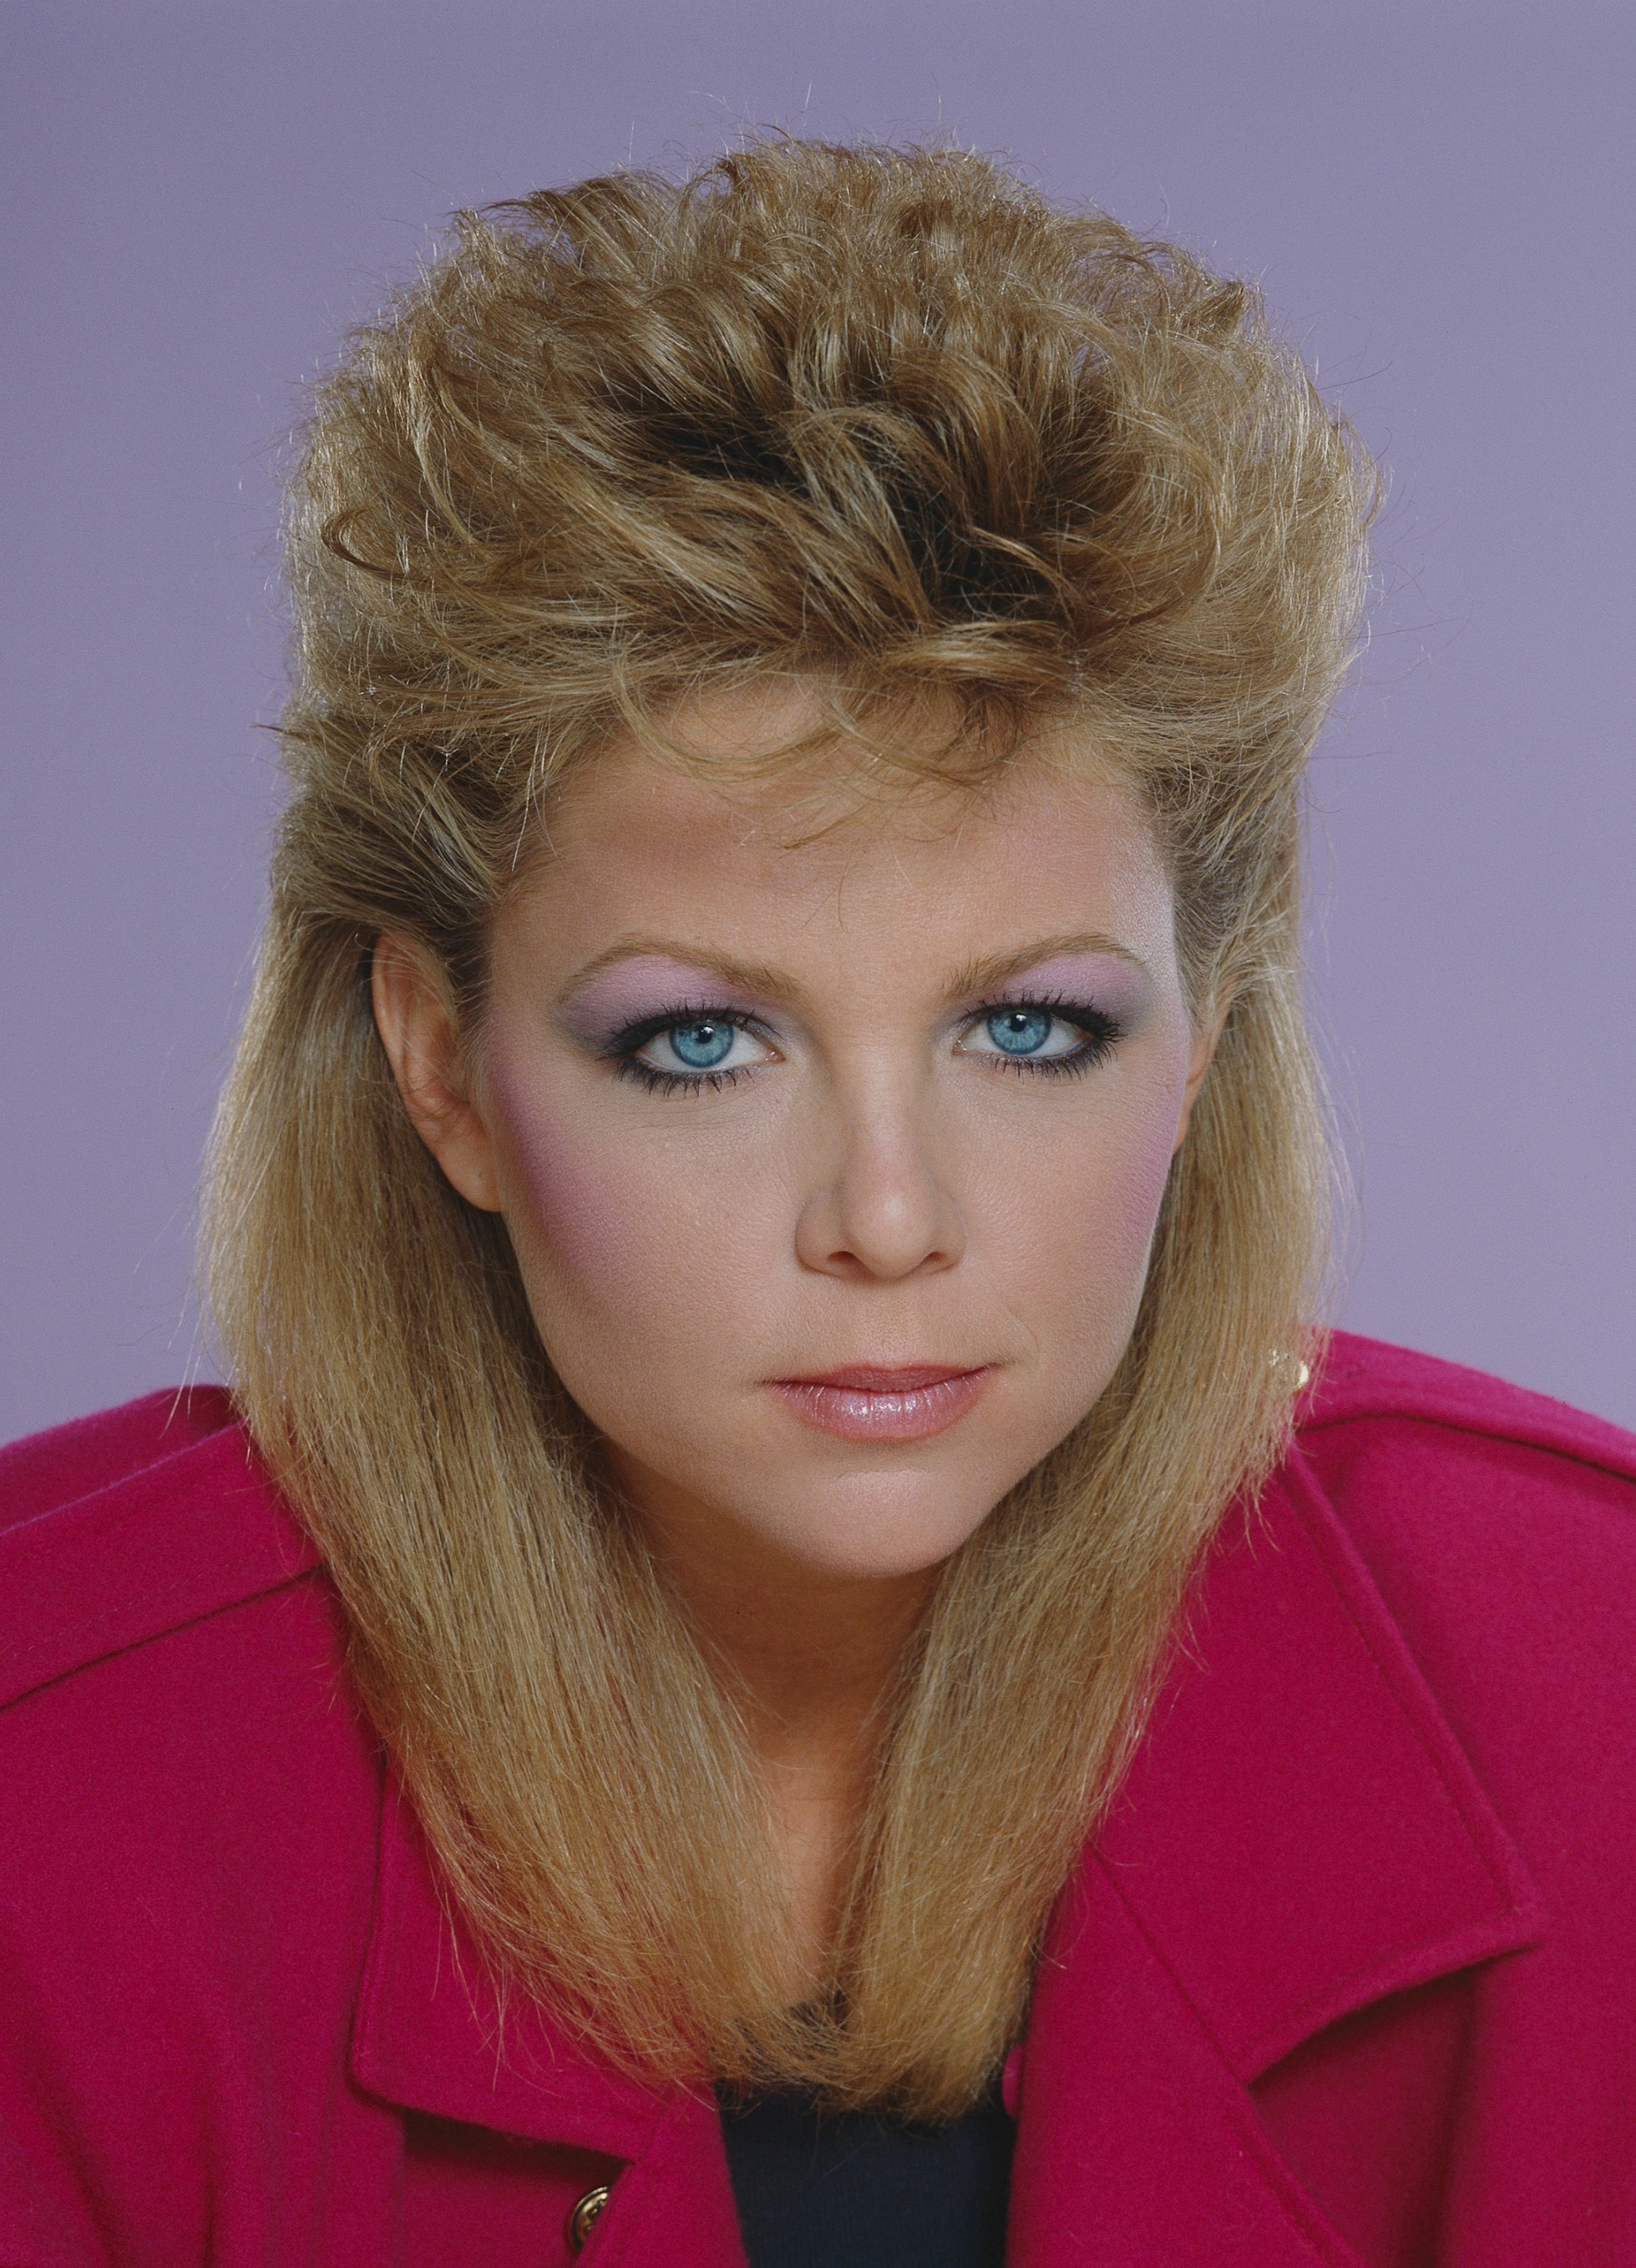 Phenomenal Bad 3980S Beauty Trends Embarrassing Eighties Hairstyles And Hairstyle Inspiration Daily Dogsangcom